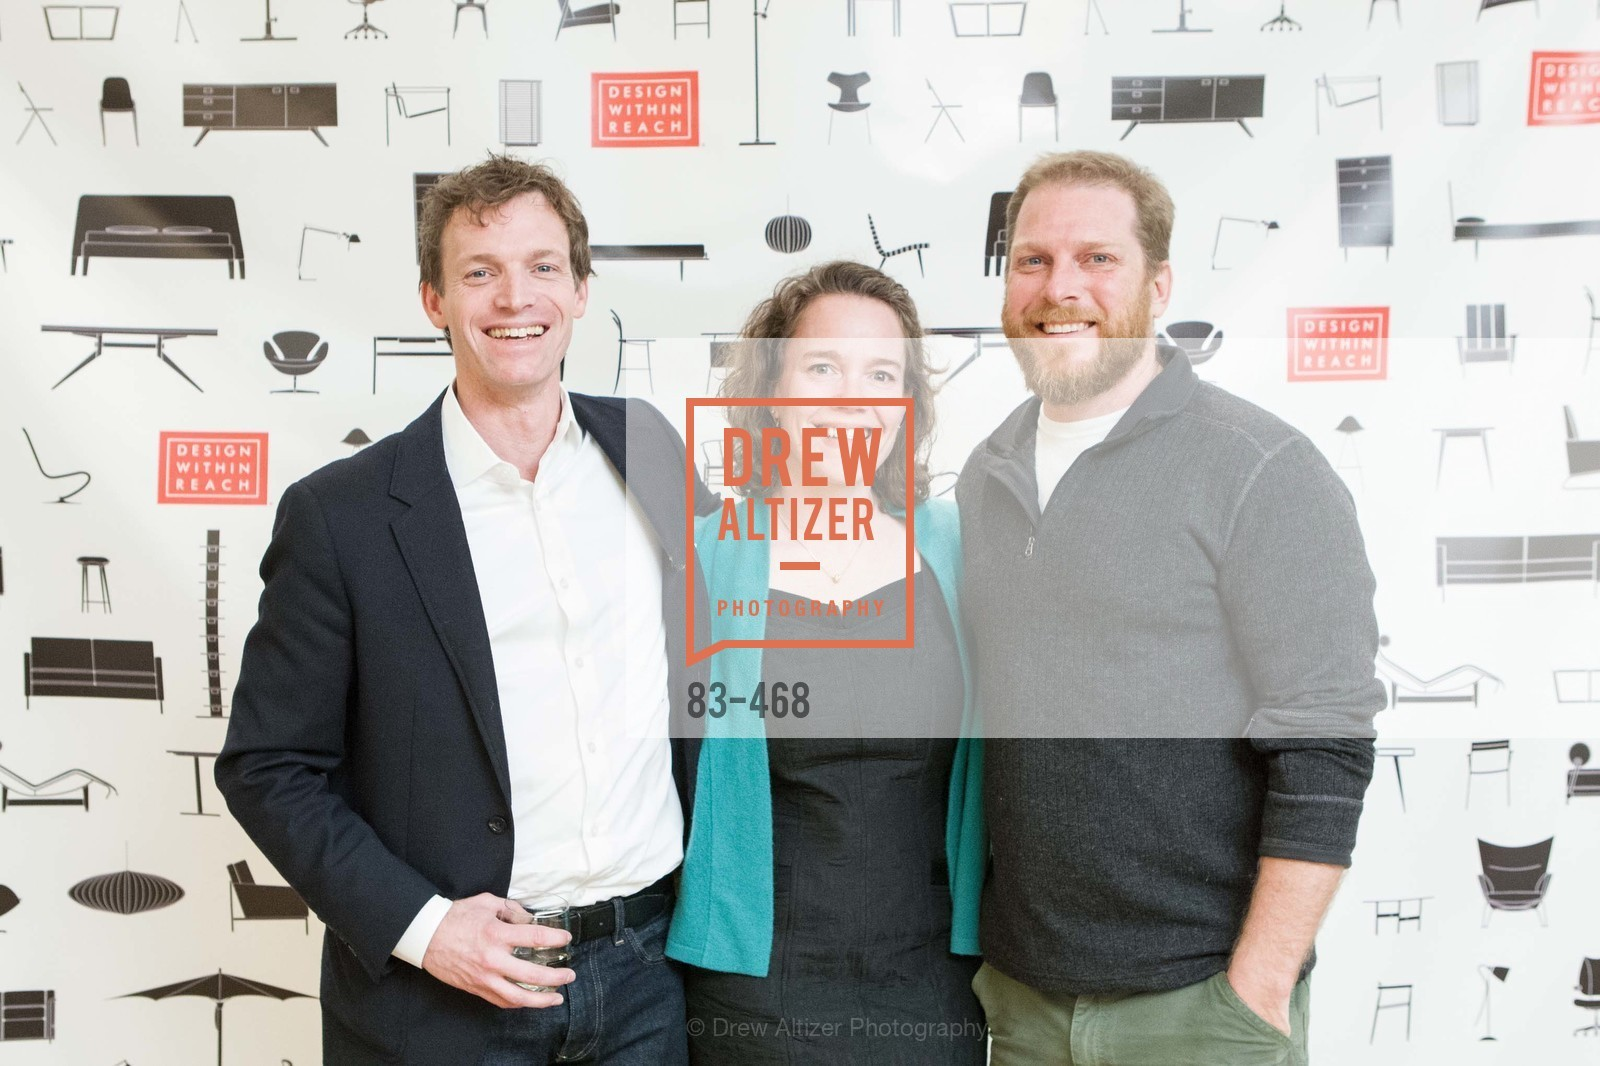 Mark Simmons, Lisa Clossey, Tom Clossey, DESIGN WITHIN REACH Studio Opening, US. US, January 21st, 2014,Drew Altizer, Drew Altizer Photography, full-service event agency, private events, San Francisco photographer, photographer California